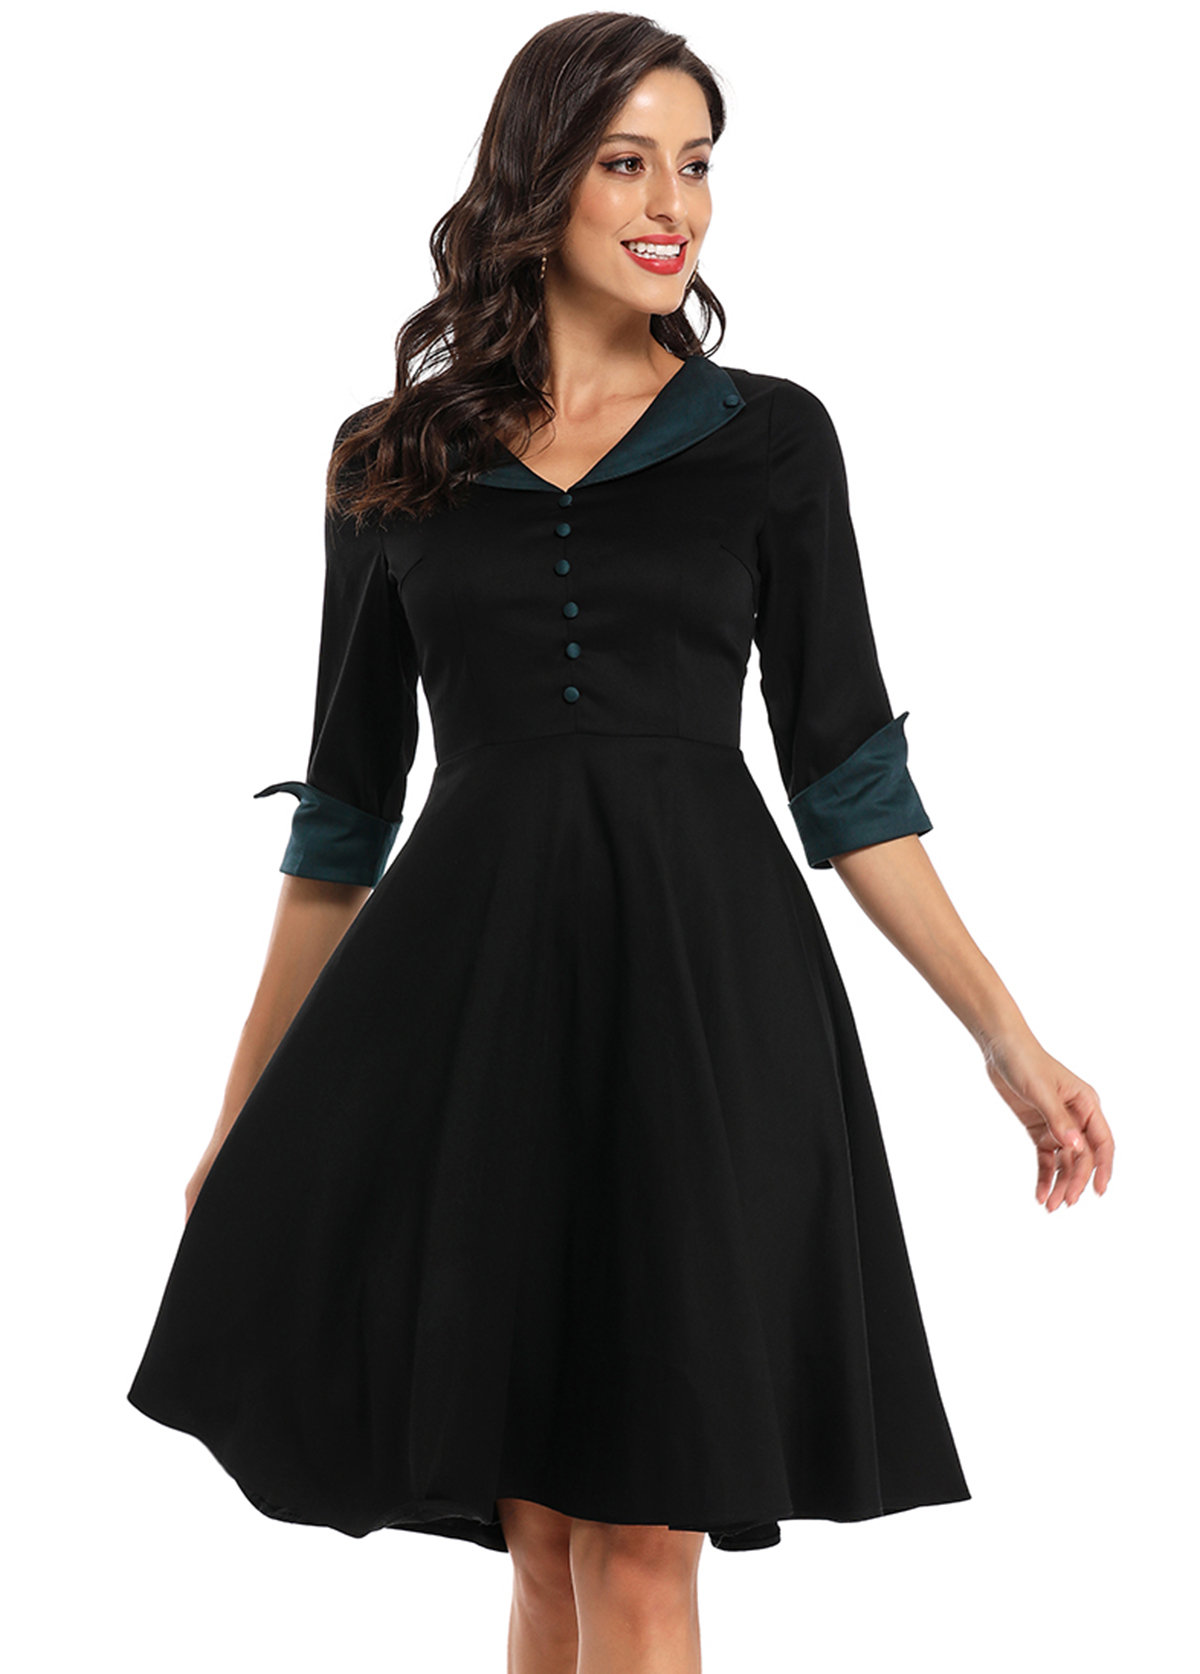 Button Detail Three Quarter Sleeve Contrast Dress